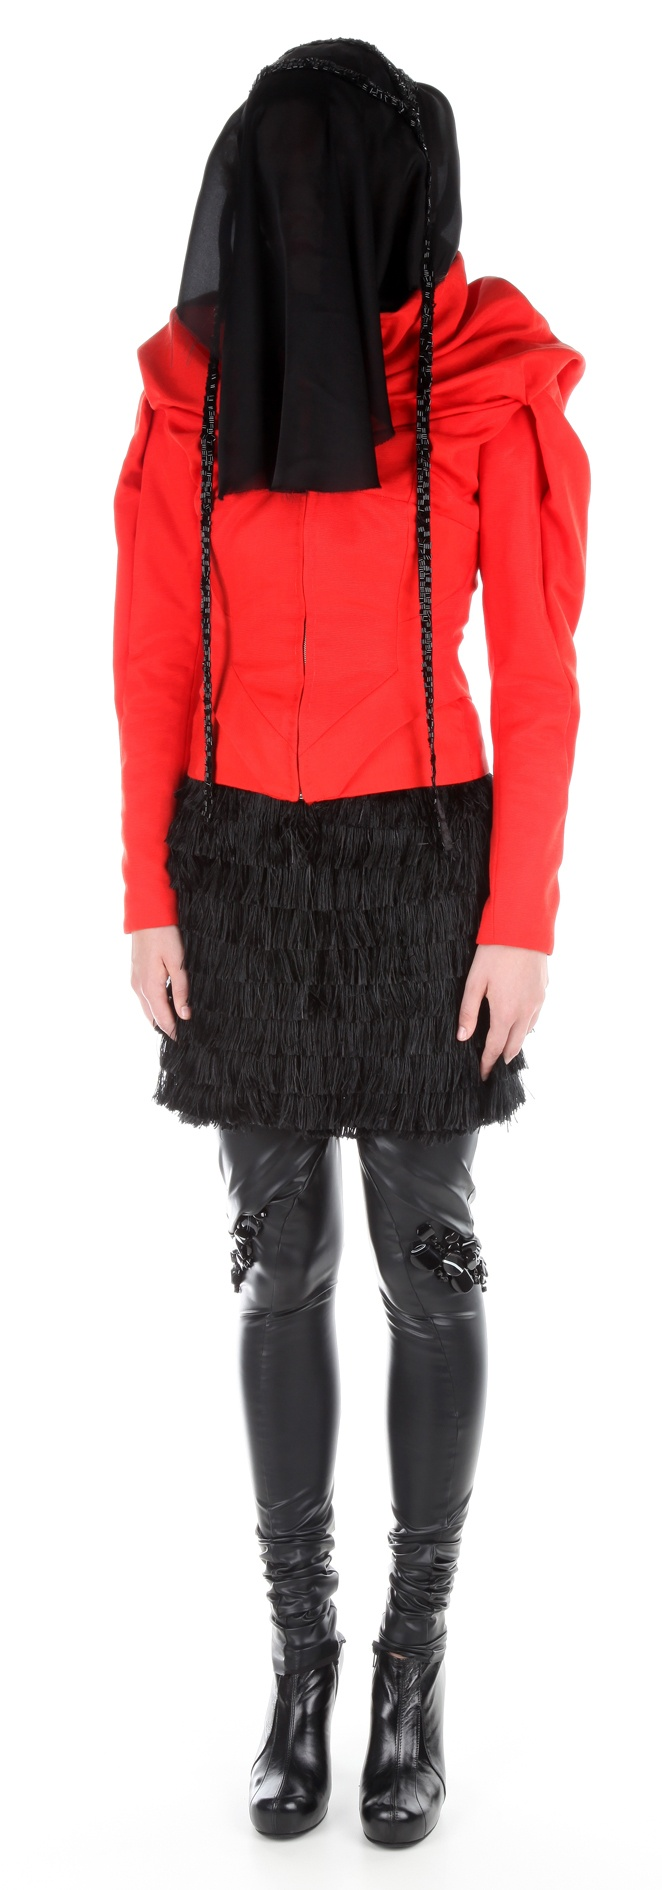 Jacket ( cotton, polyester), veil ( silk chiffon, glass beads embroided onto a strap), dress ( silk threads), leggins ( polyester, precious stones), shoes ( leather, stainless-steel heel)